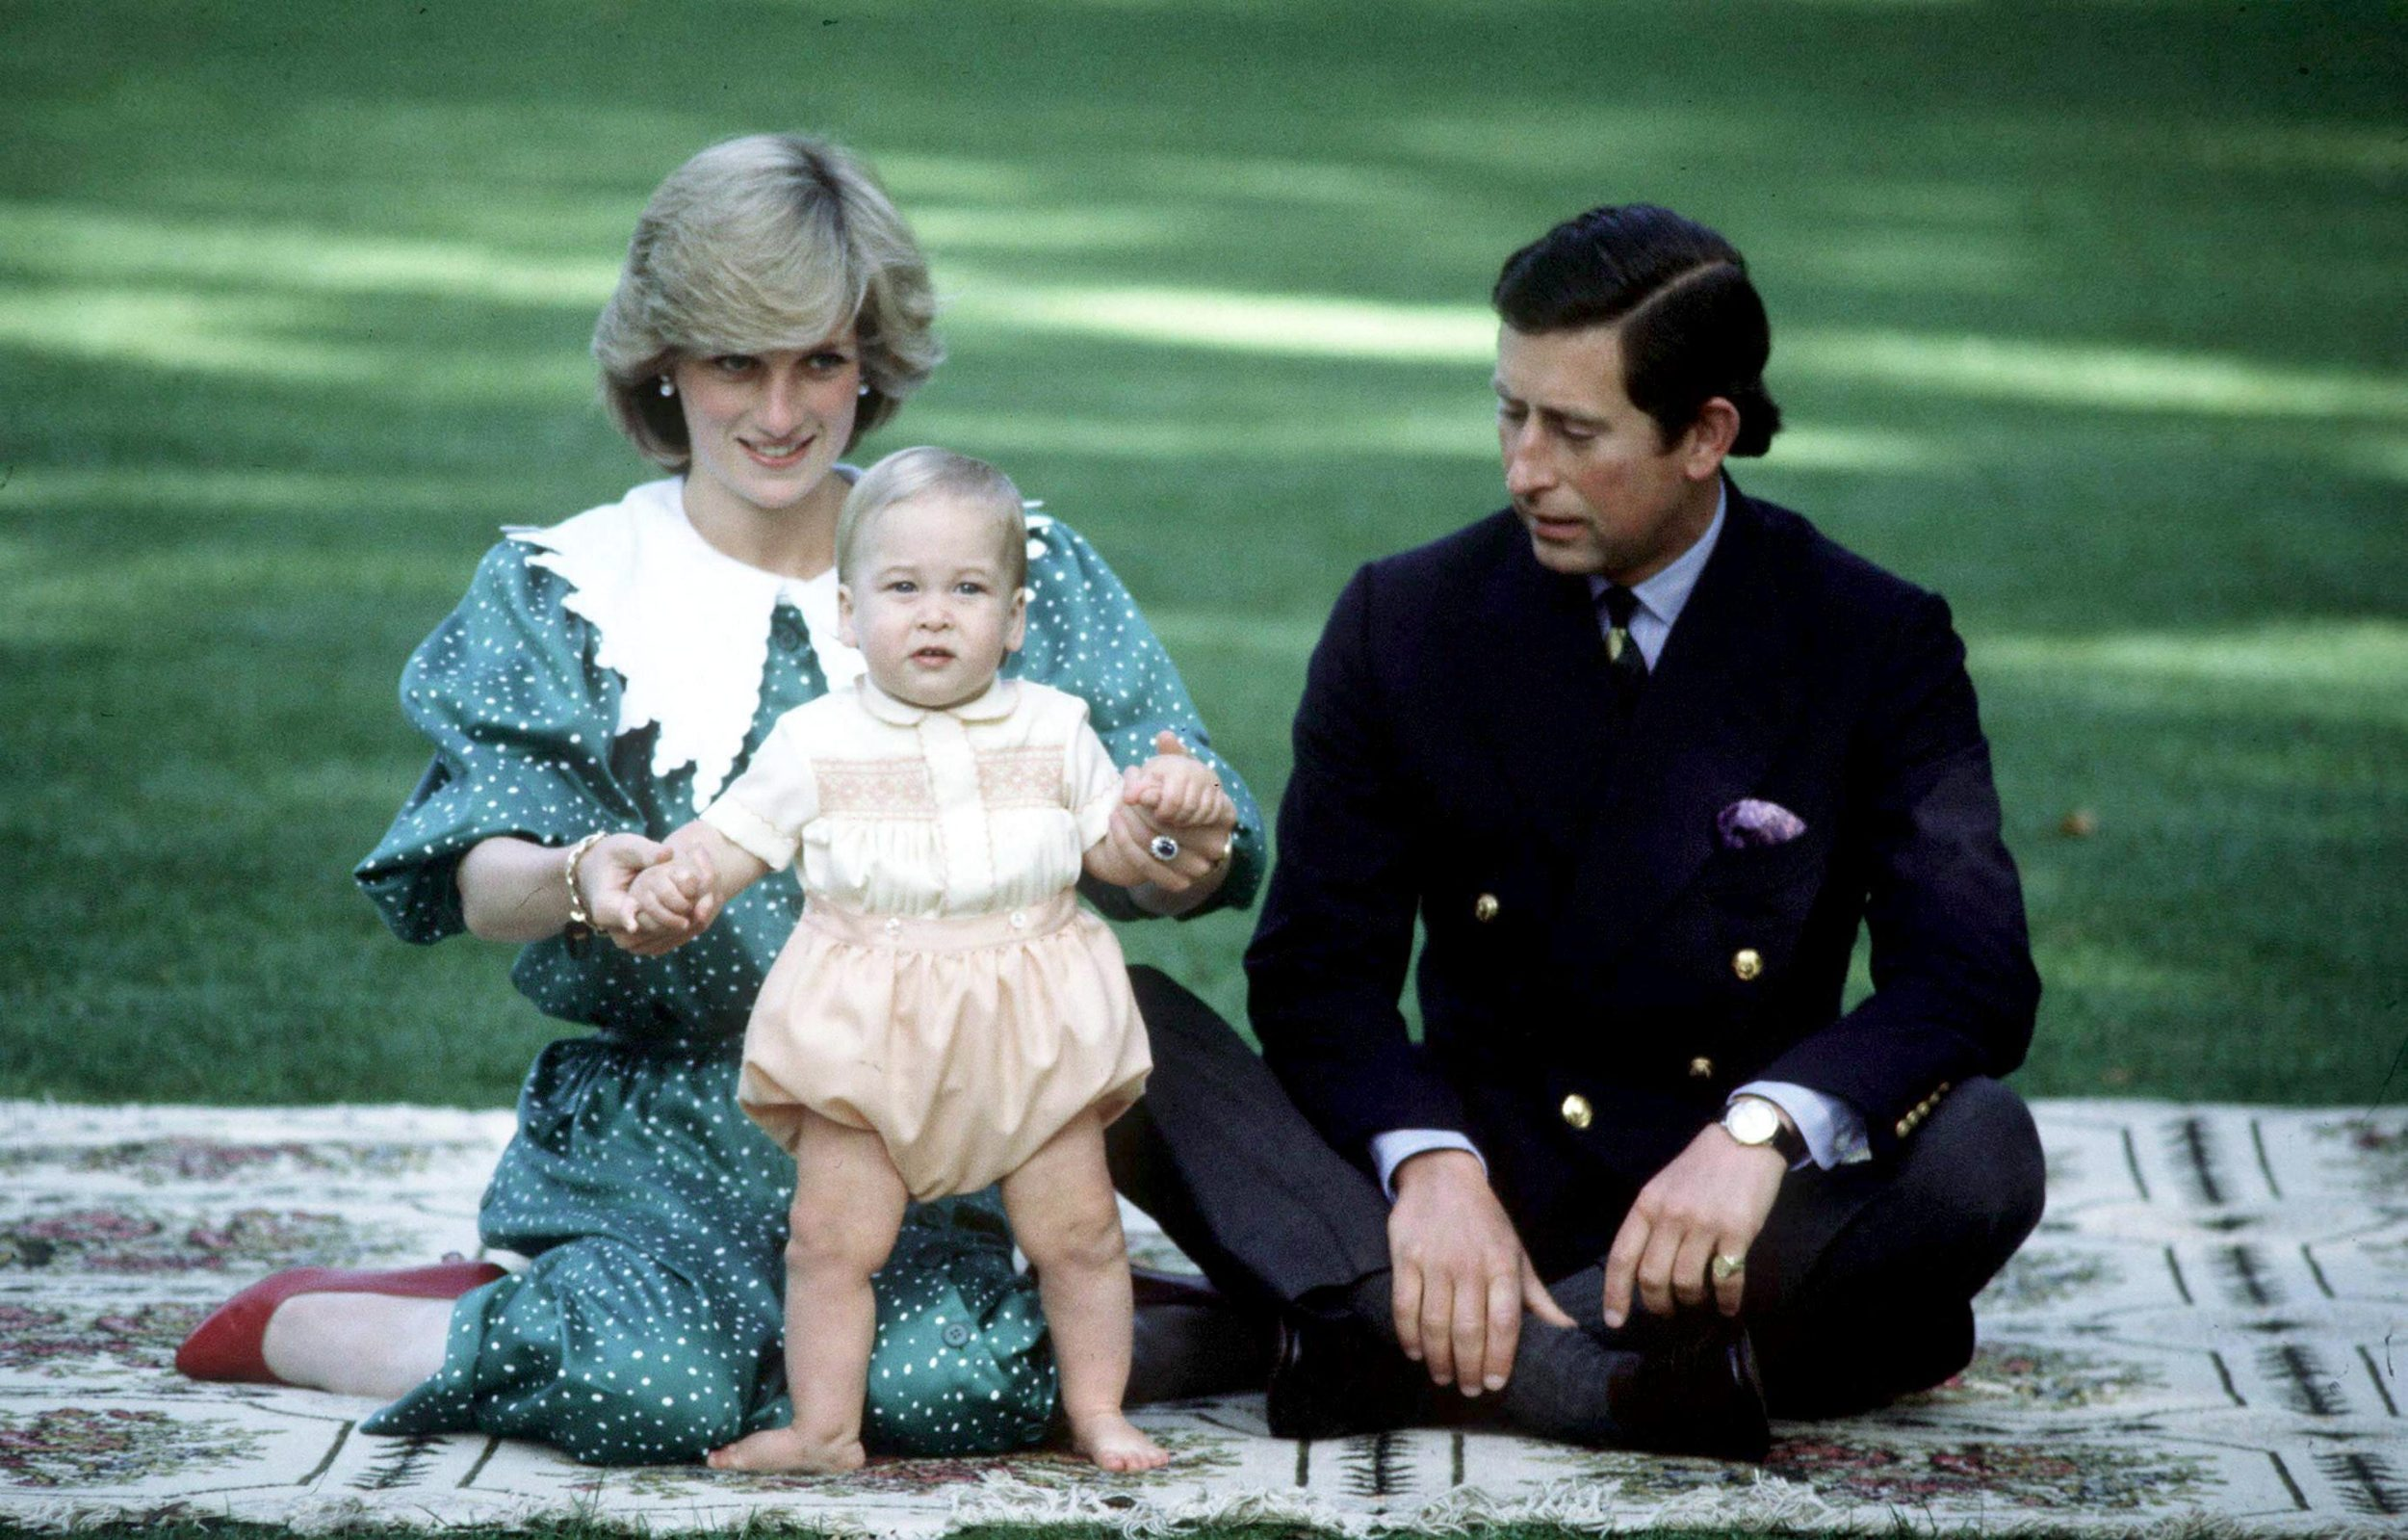 Prince William is seen with his parents HRH Prince Charles and the late Princess Diana (wearing Vanvelden puritan collar) during their 1983 official visit to New Zealand, in April 1983 in Auckland, New Zealand.,Image: 167008612, License: Rights-managed, Restrictions: WORLD RIGHTS - Fee Payable Upon Reproduction - For queries contact Photoshot  sales@photoshot.com  London: +44 (0) 20 7421 6000  Los Angeles: +1 917 704 9816  Berlin: +49 (0) 30 76 212 251, Model Release: no, Credit line: LFI/Photoshot / Avalon Editorial / Profimedia